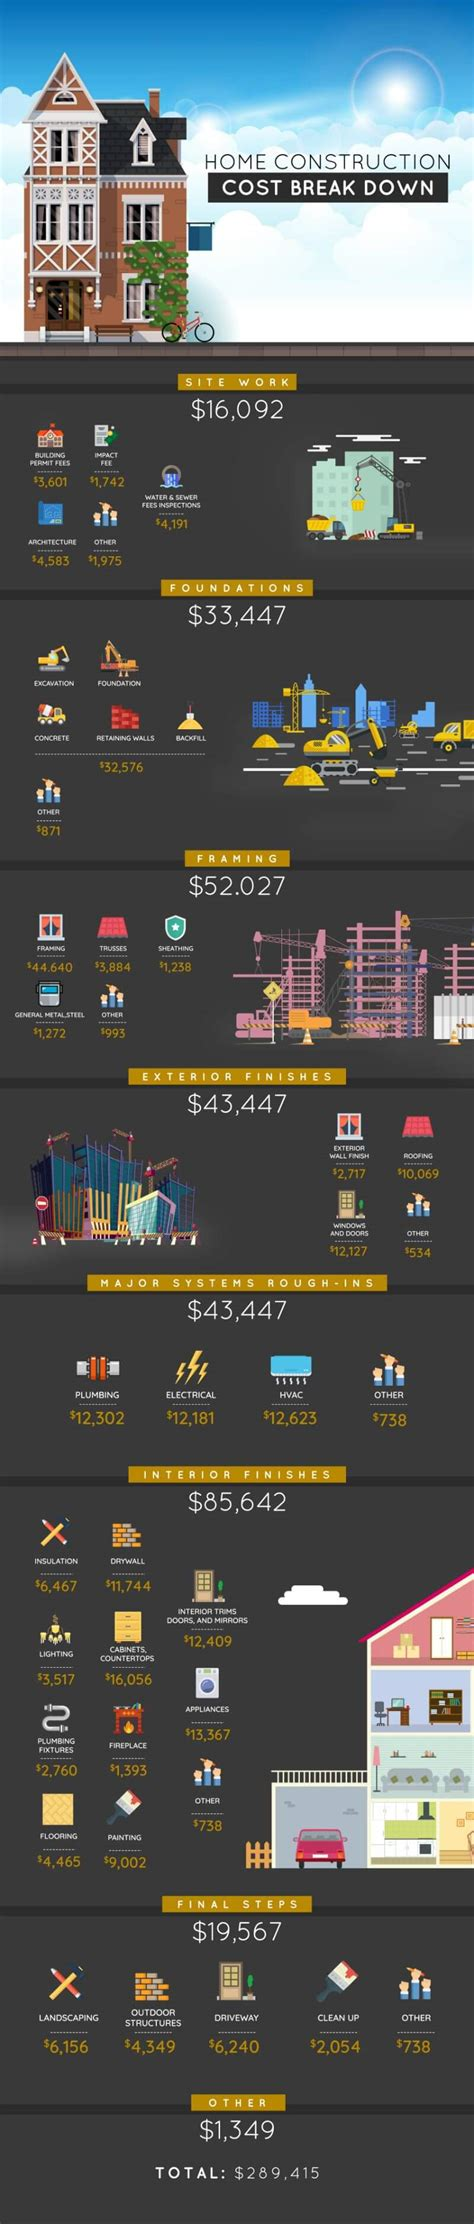 build a house cost how much does it cost to build a house in 2018 buy vs build